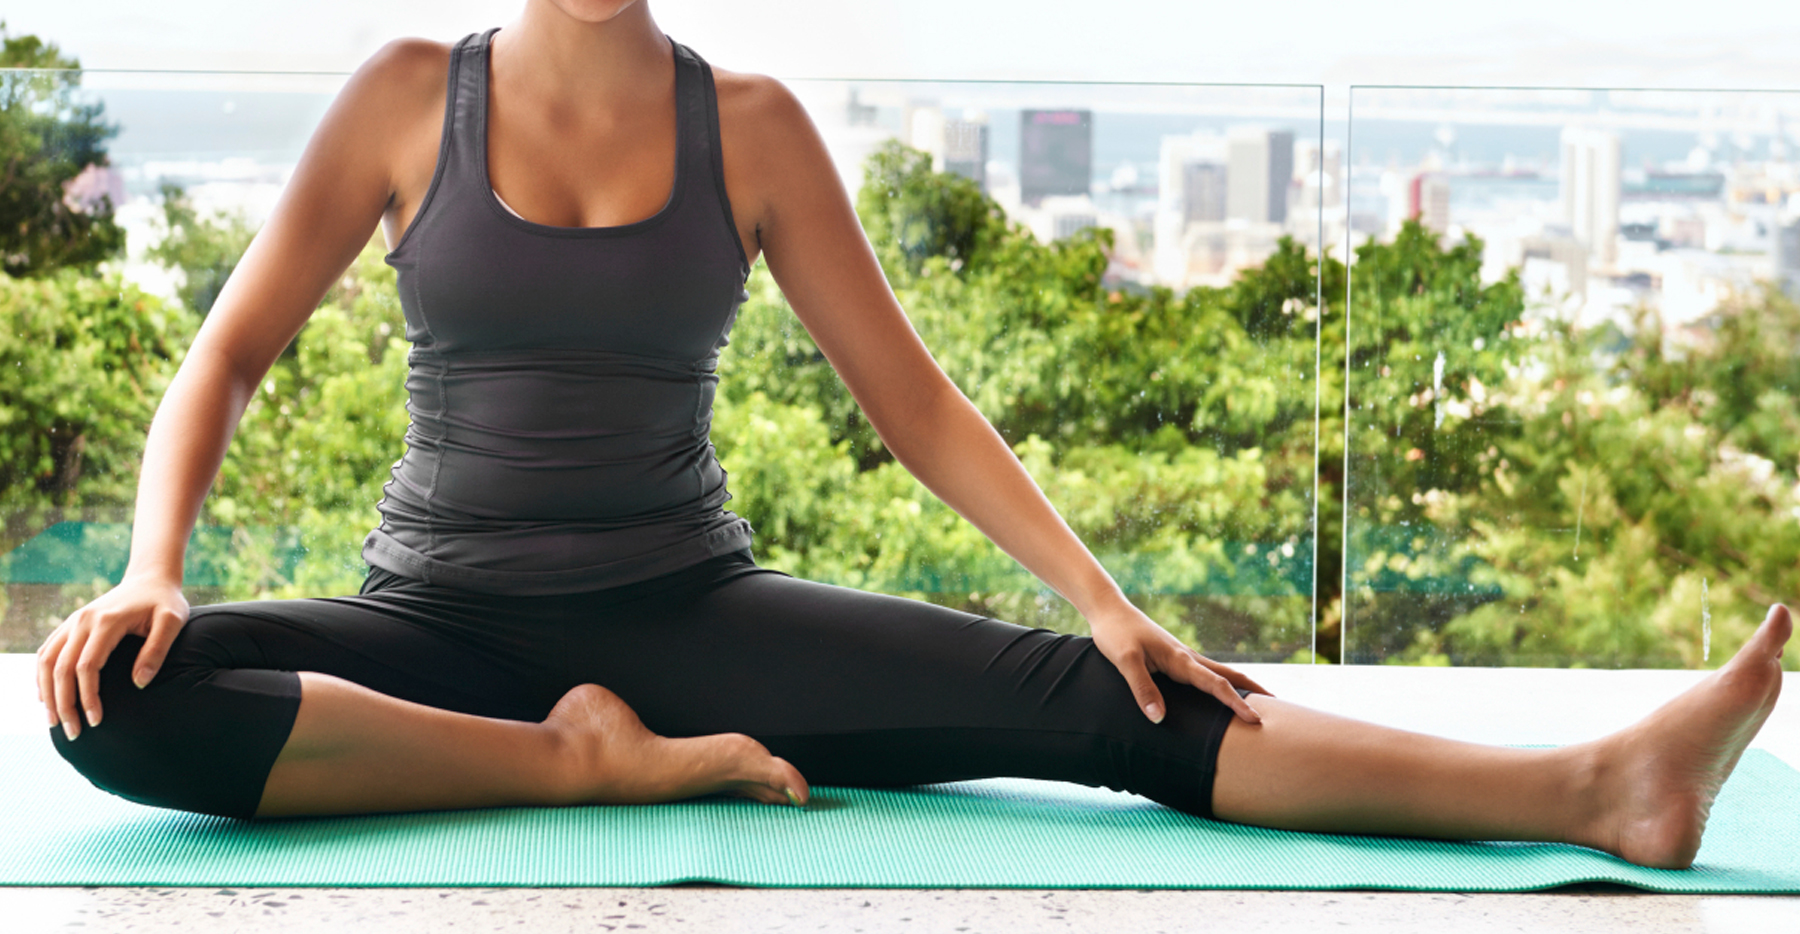 You Might Like The 6 Yoga Poses To Relieve Back Pain Asap Read